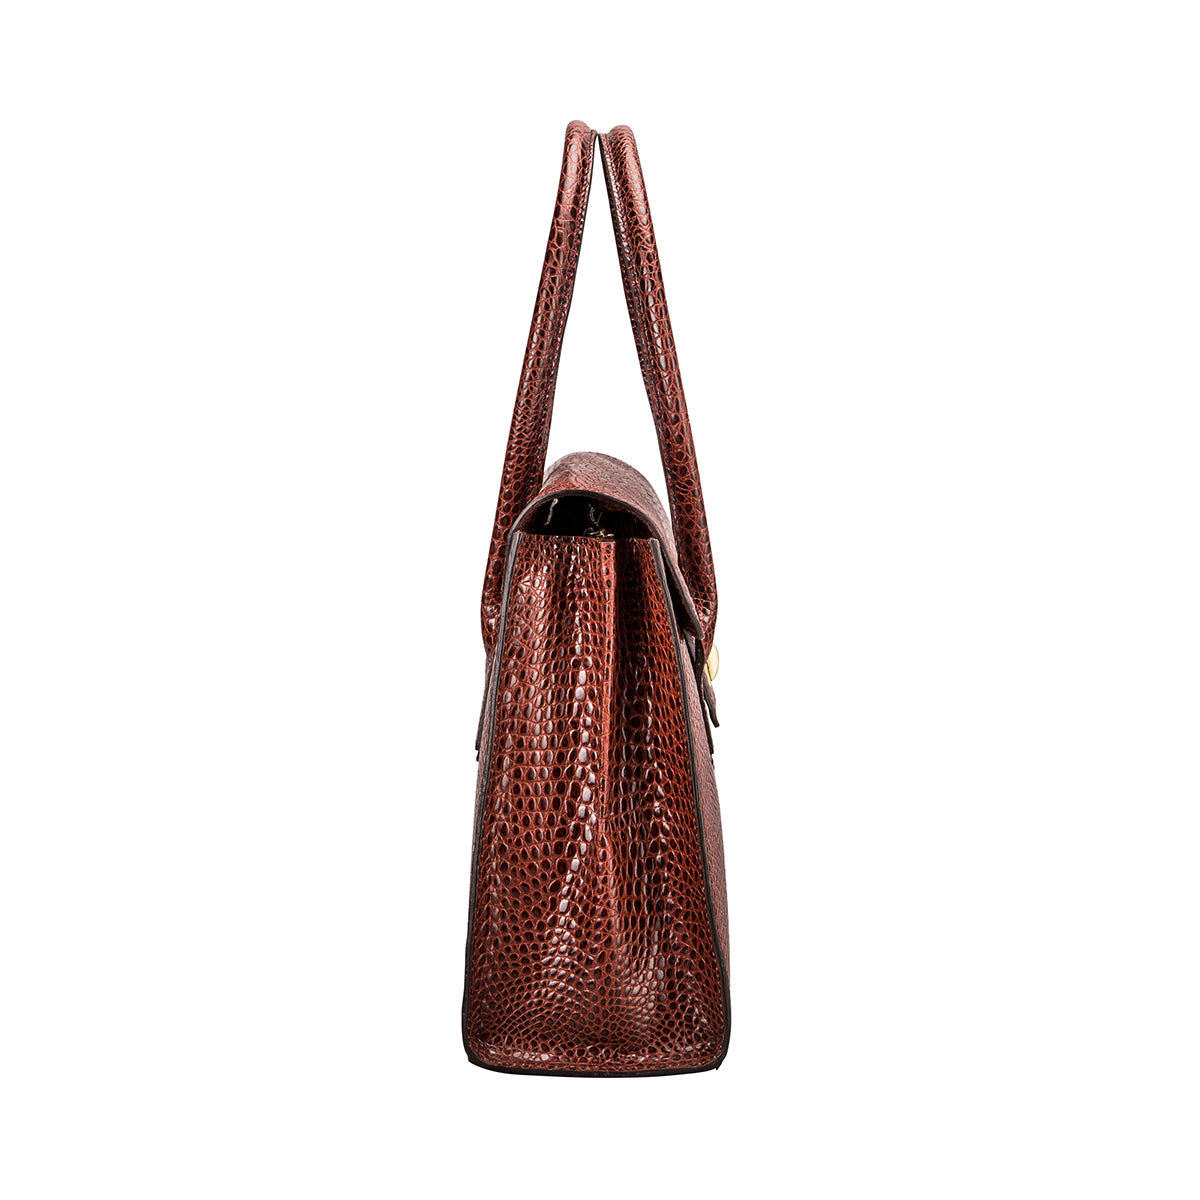 Image 4 of the 'Fabia' Chestnut Croco Veg-Tanned Leather Workbag